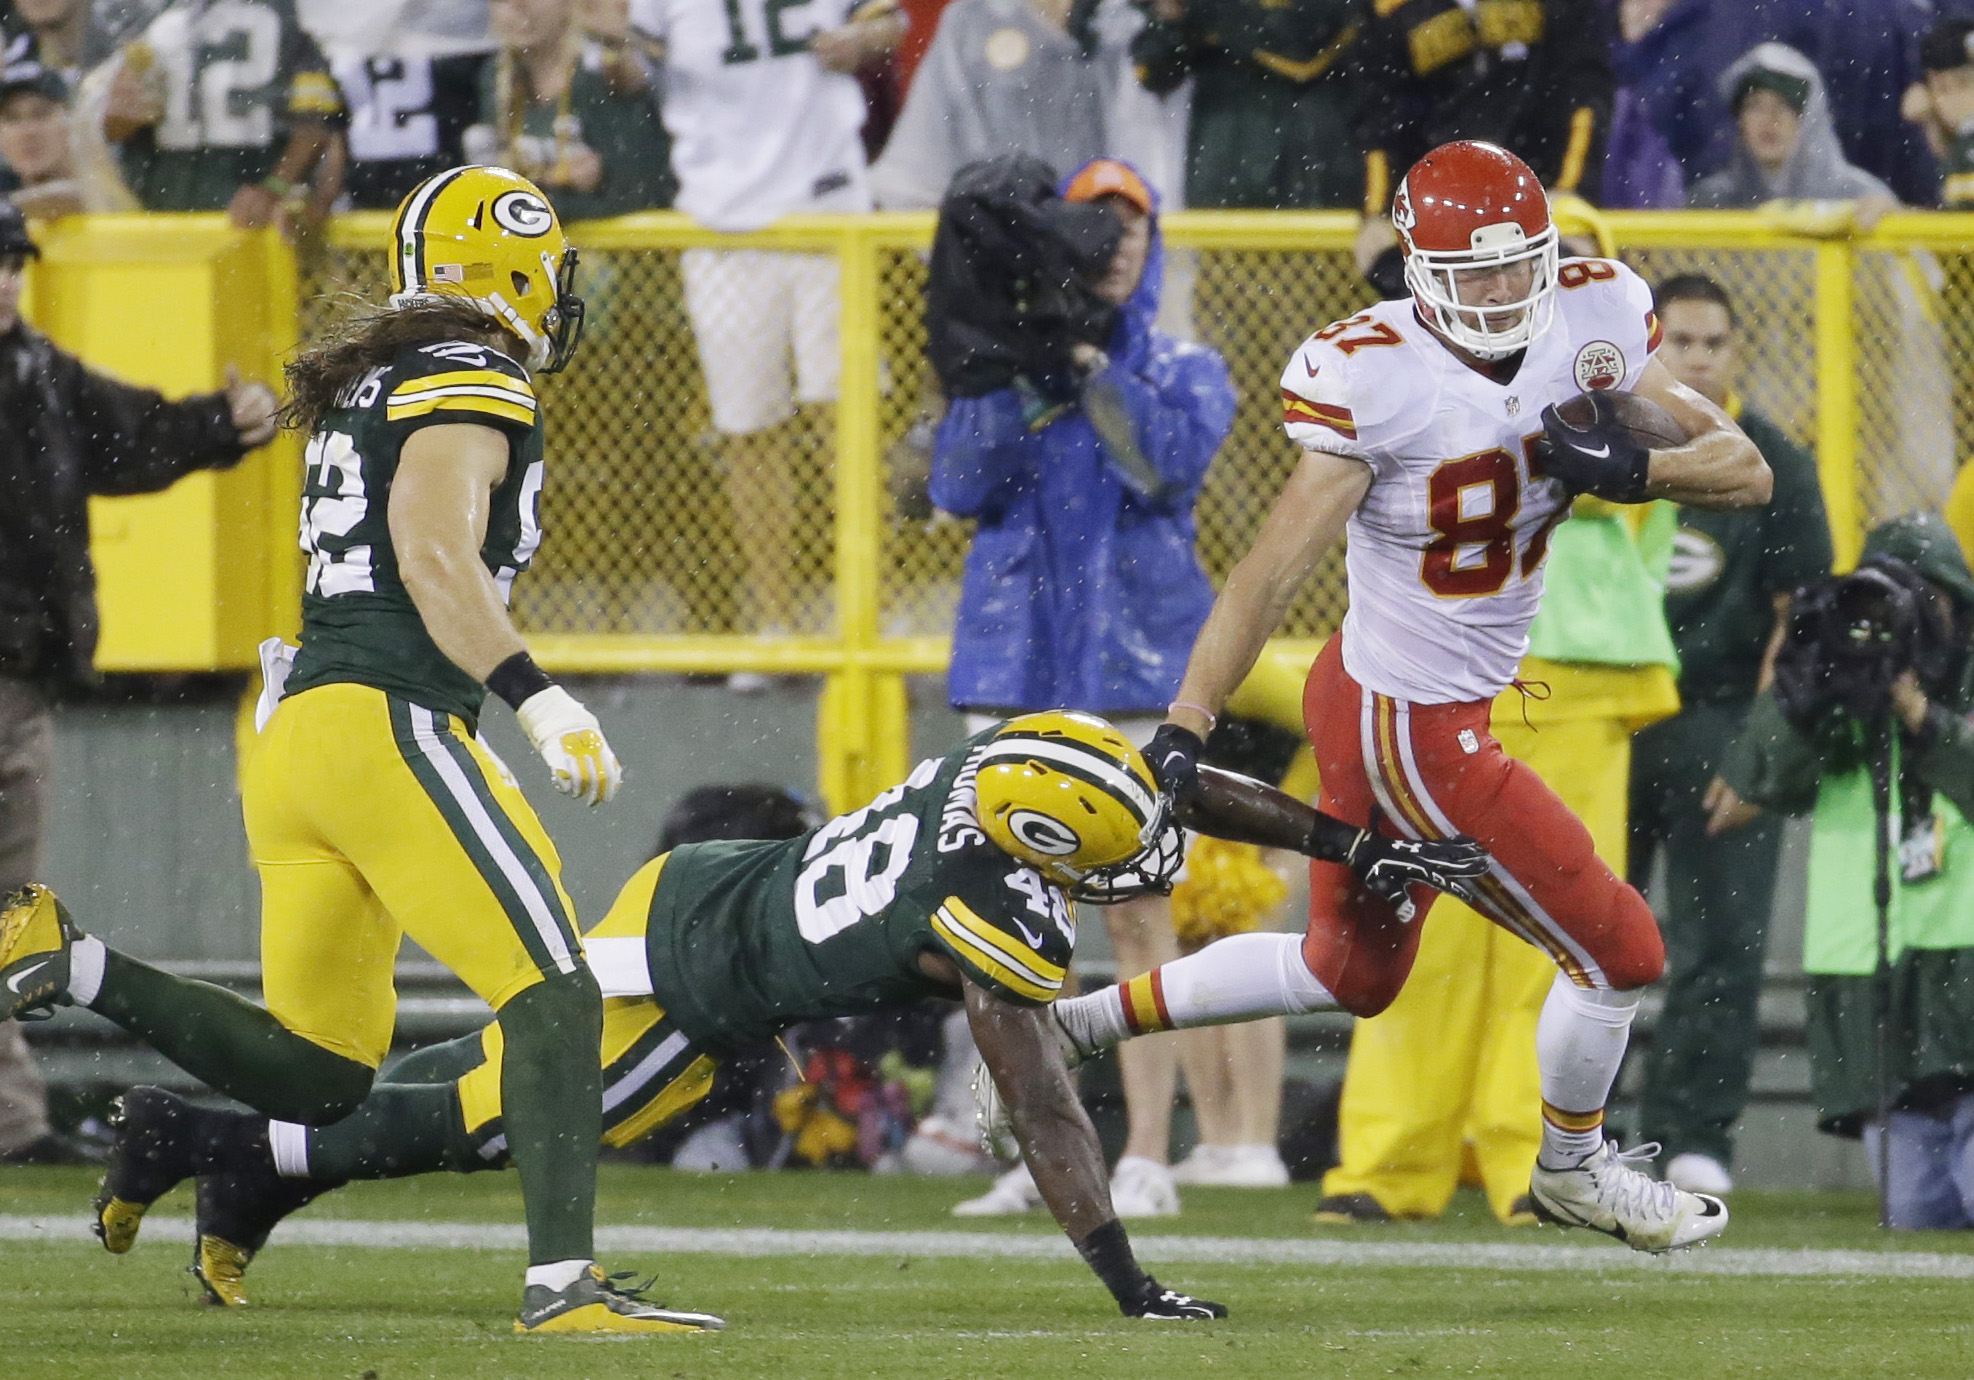 Kansas City Chiefs' Travis Kelce catches a pass and runs past Green Bay Packers' Joe Thomas during the second half of an NFL football game Monday, Sept. 28, 2015, in Green Bay, Wis. (AP Photo/Morry Gash)